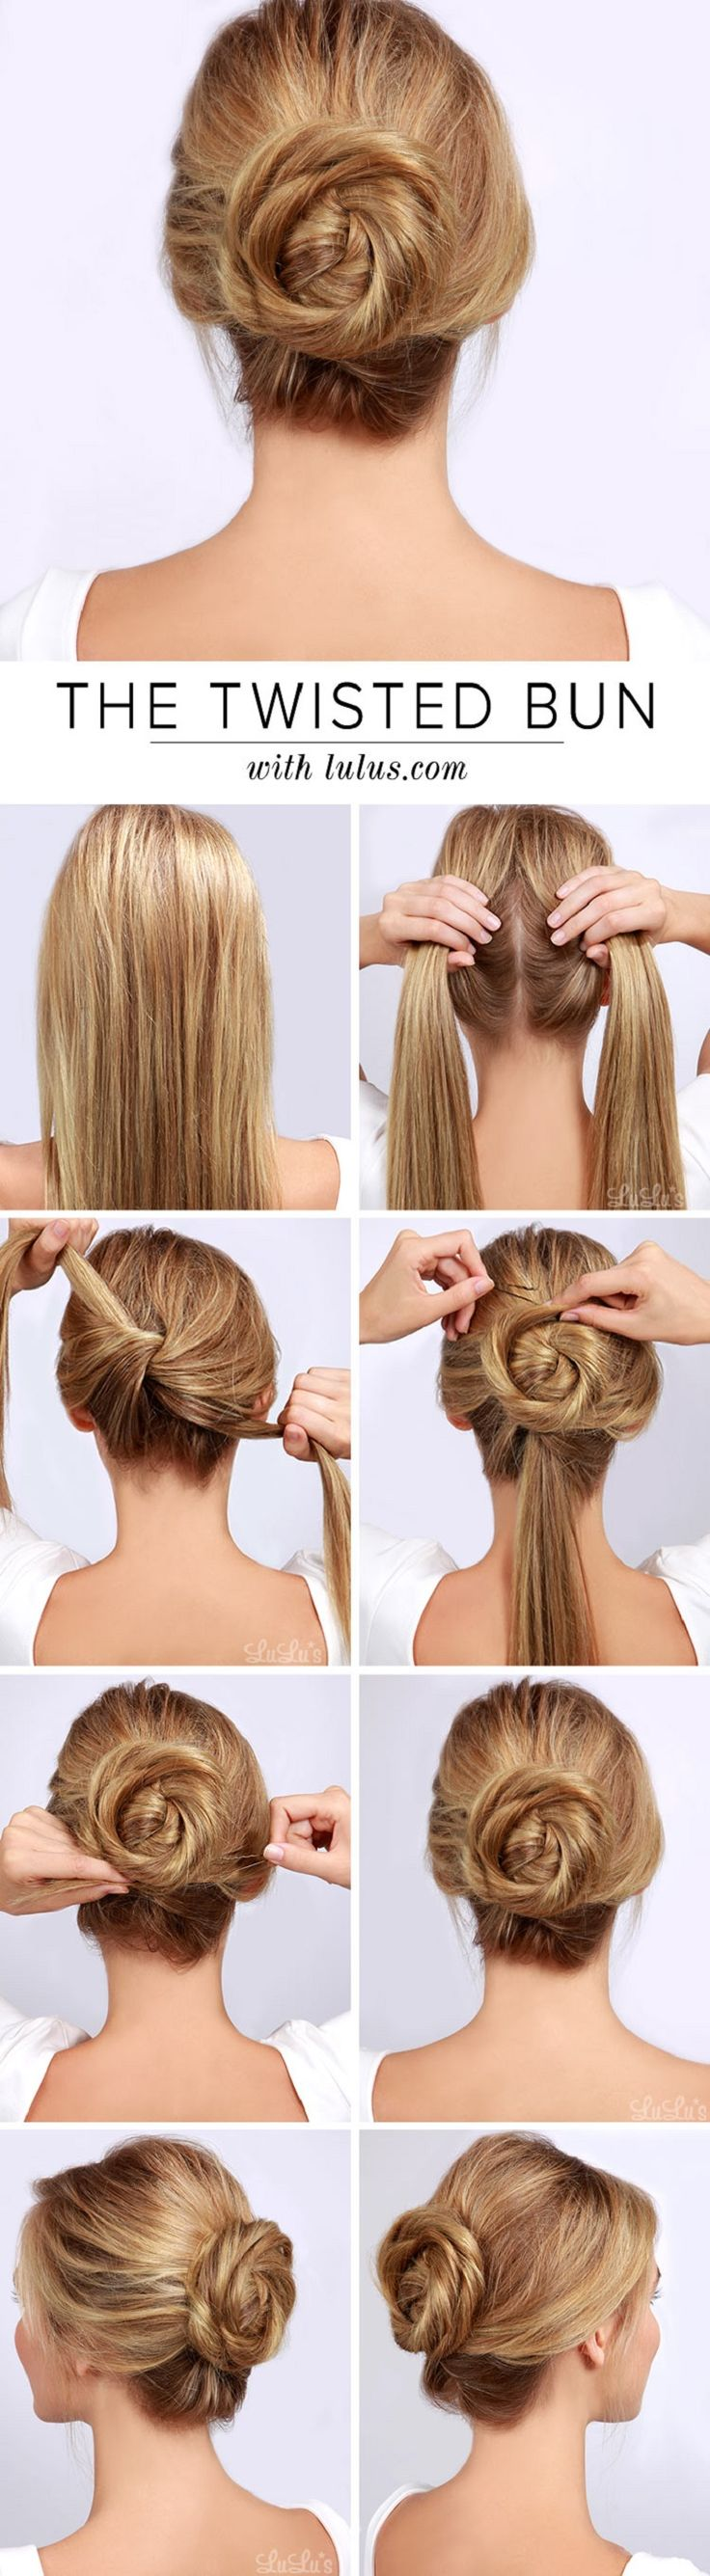 118 best successful hairz images on Pinterest